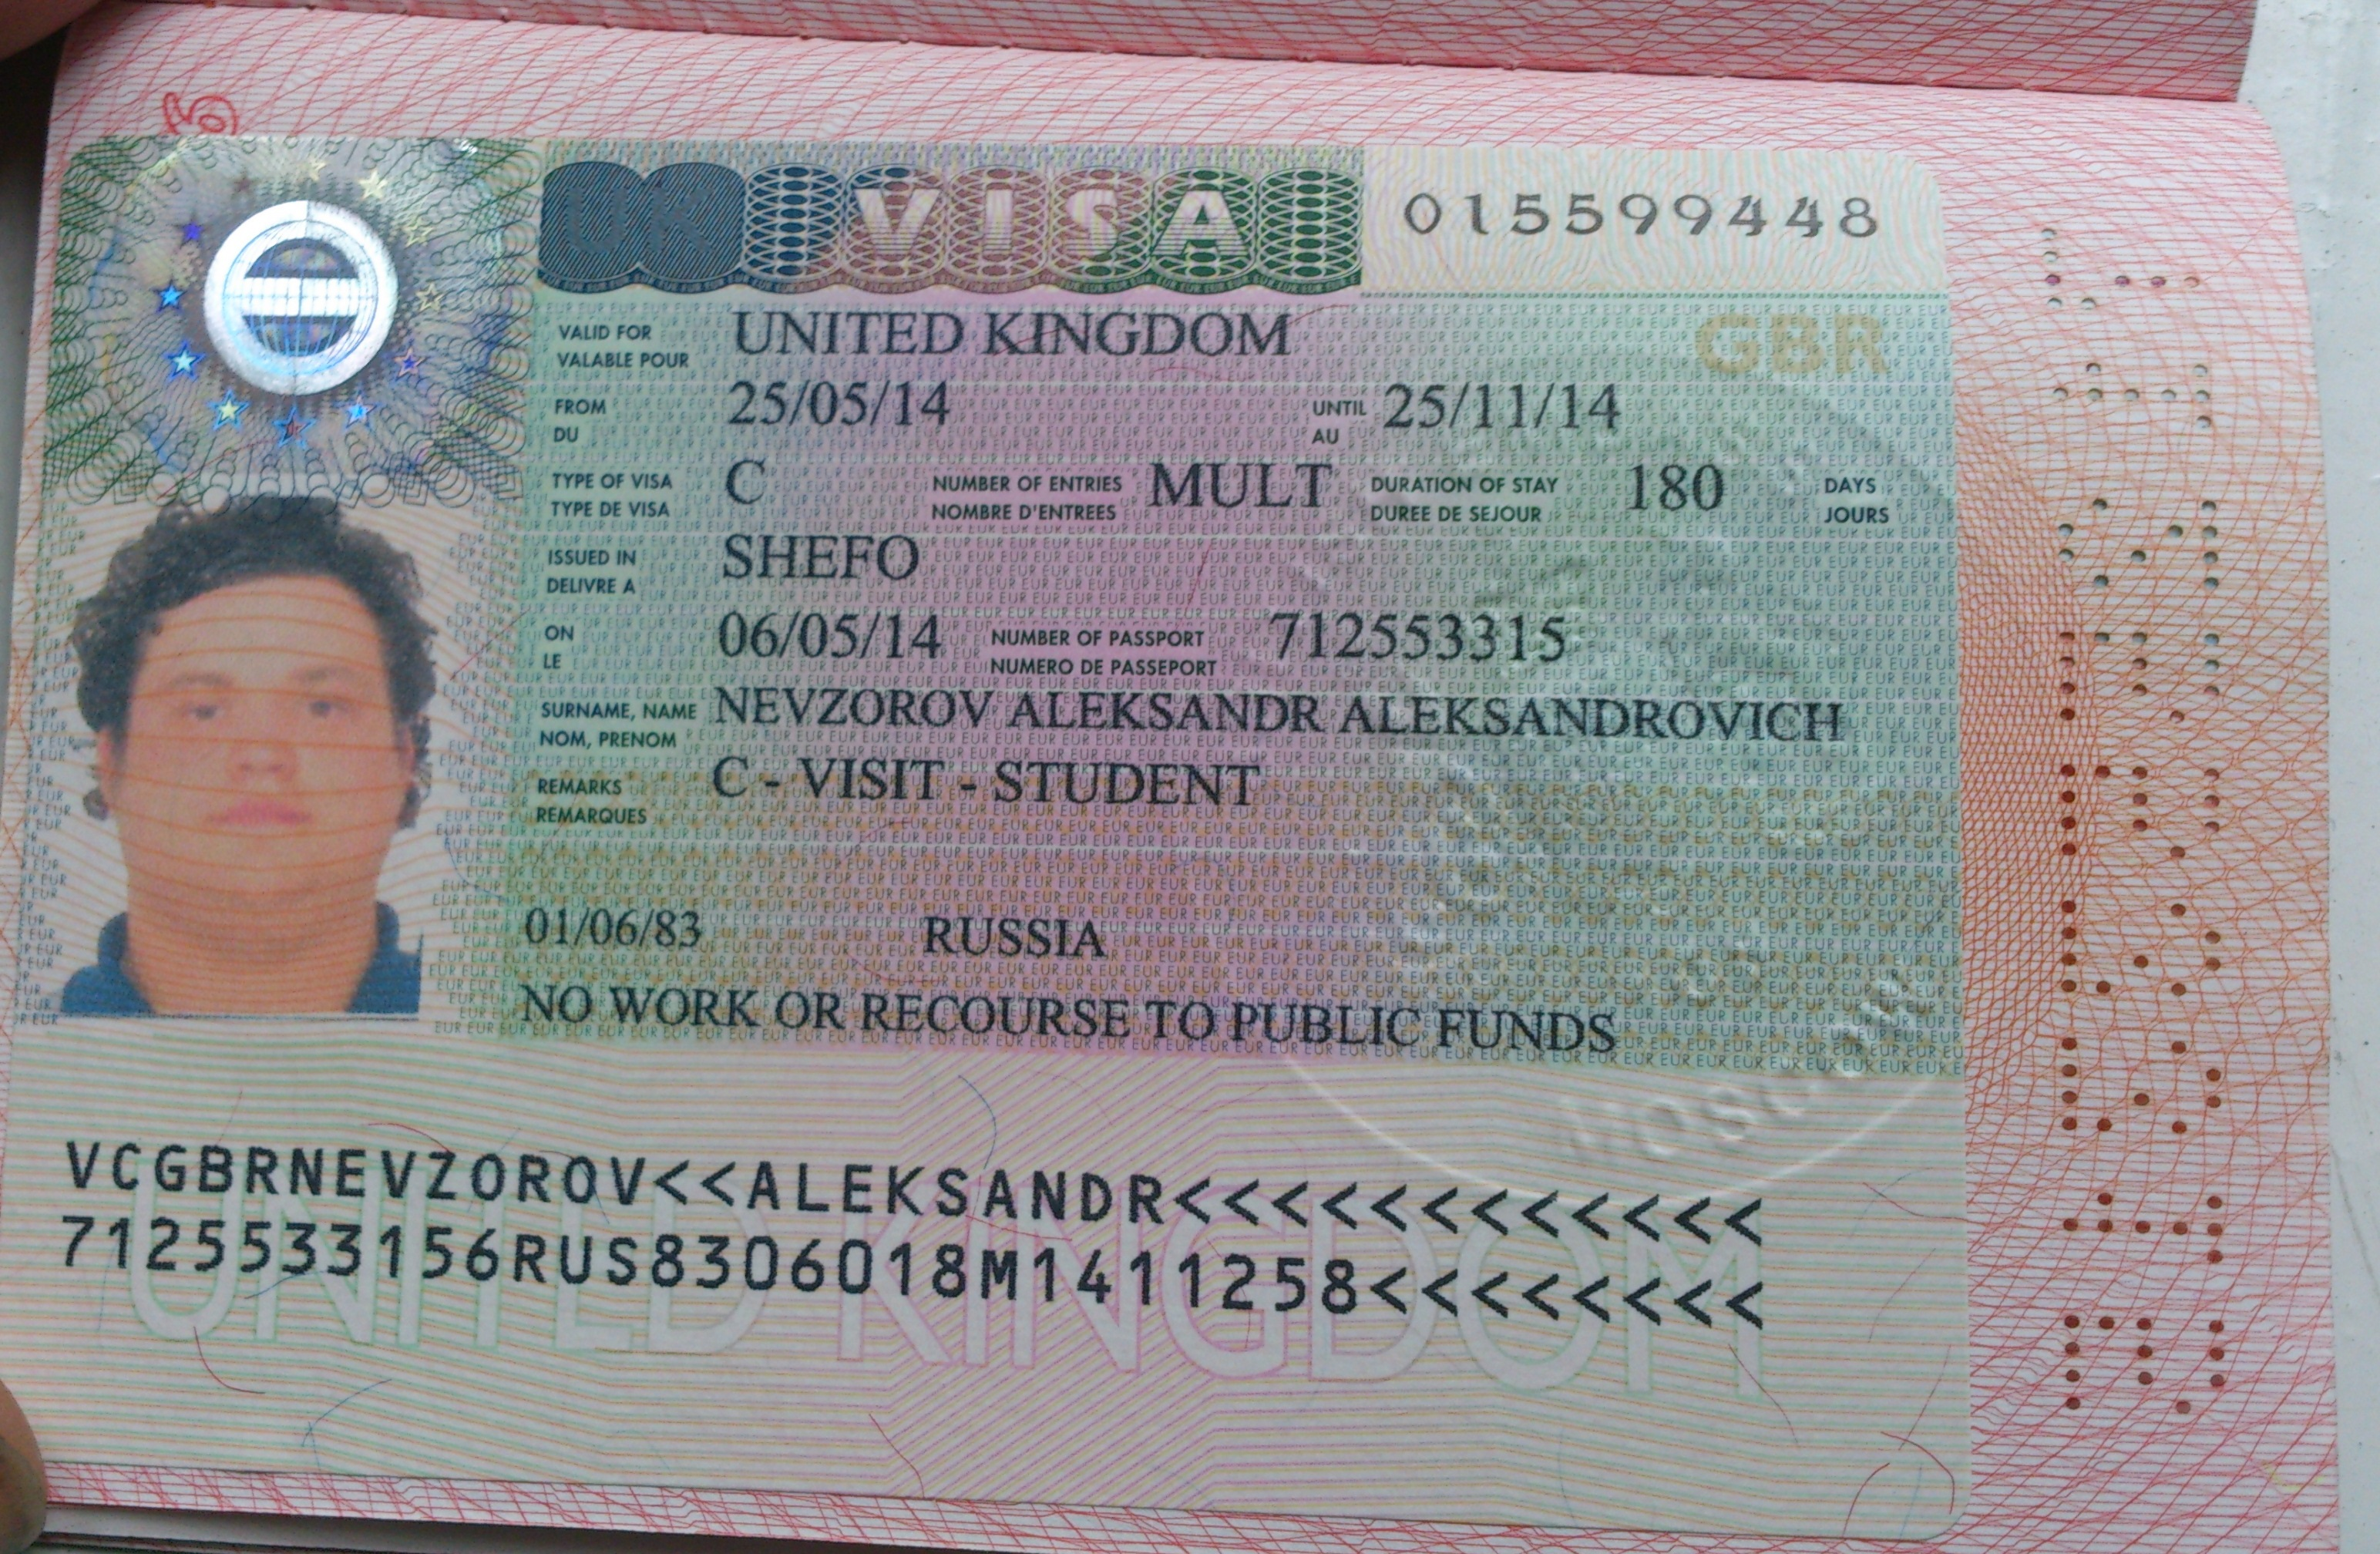 The Uk Visa In A Russian Student's Passport